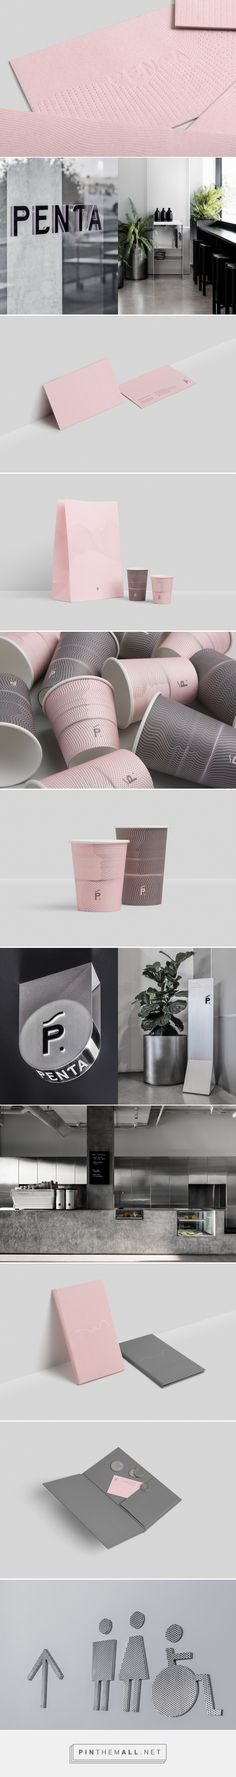 Penta Cafe Branding by Pop and Pac | Fivestar Branding Agency – Design and Branding Agency & Curated Inspiration Gallery